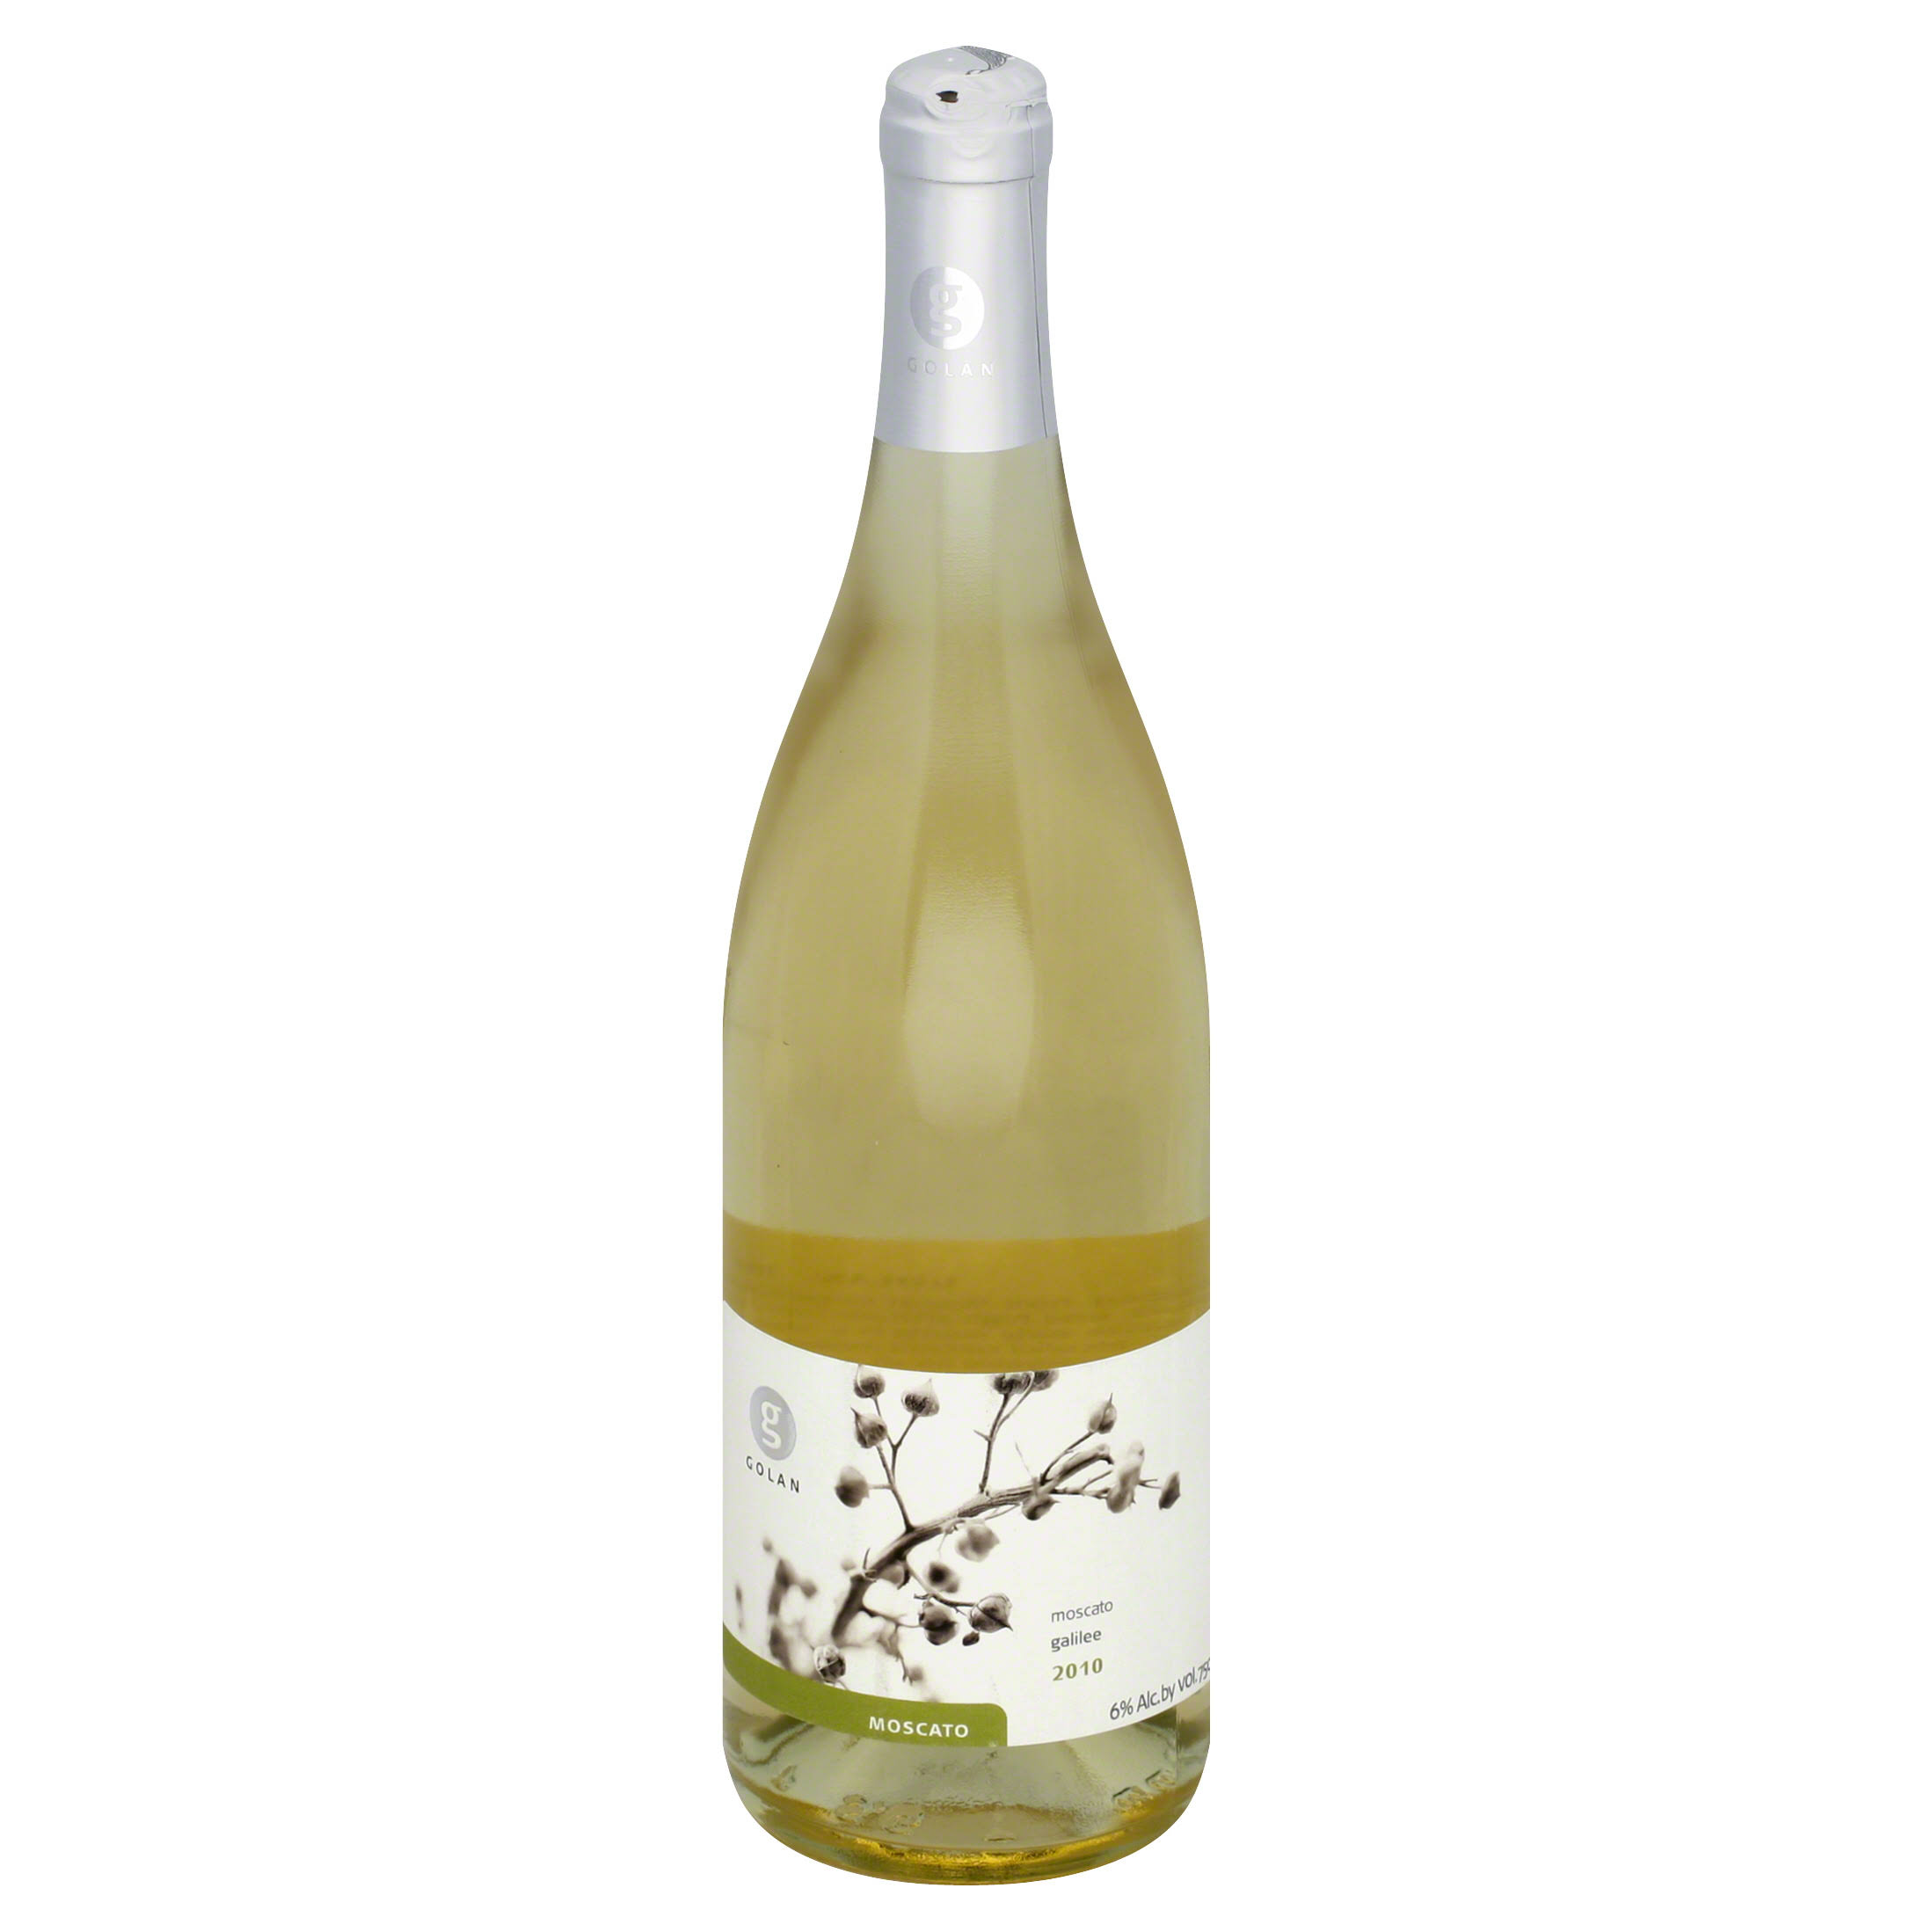 Golan Moscato, Galilee, 2010 - 750 ml